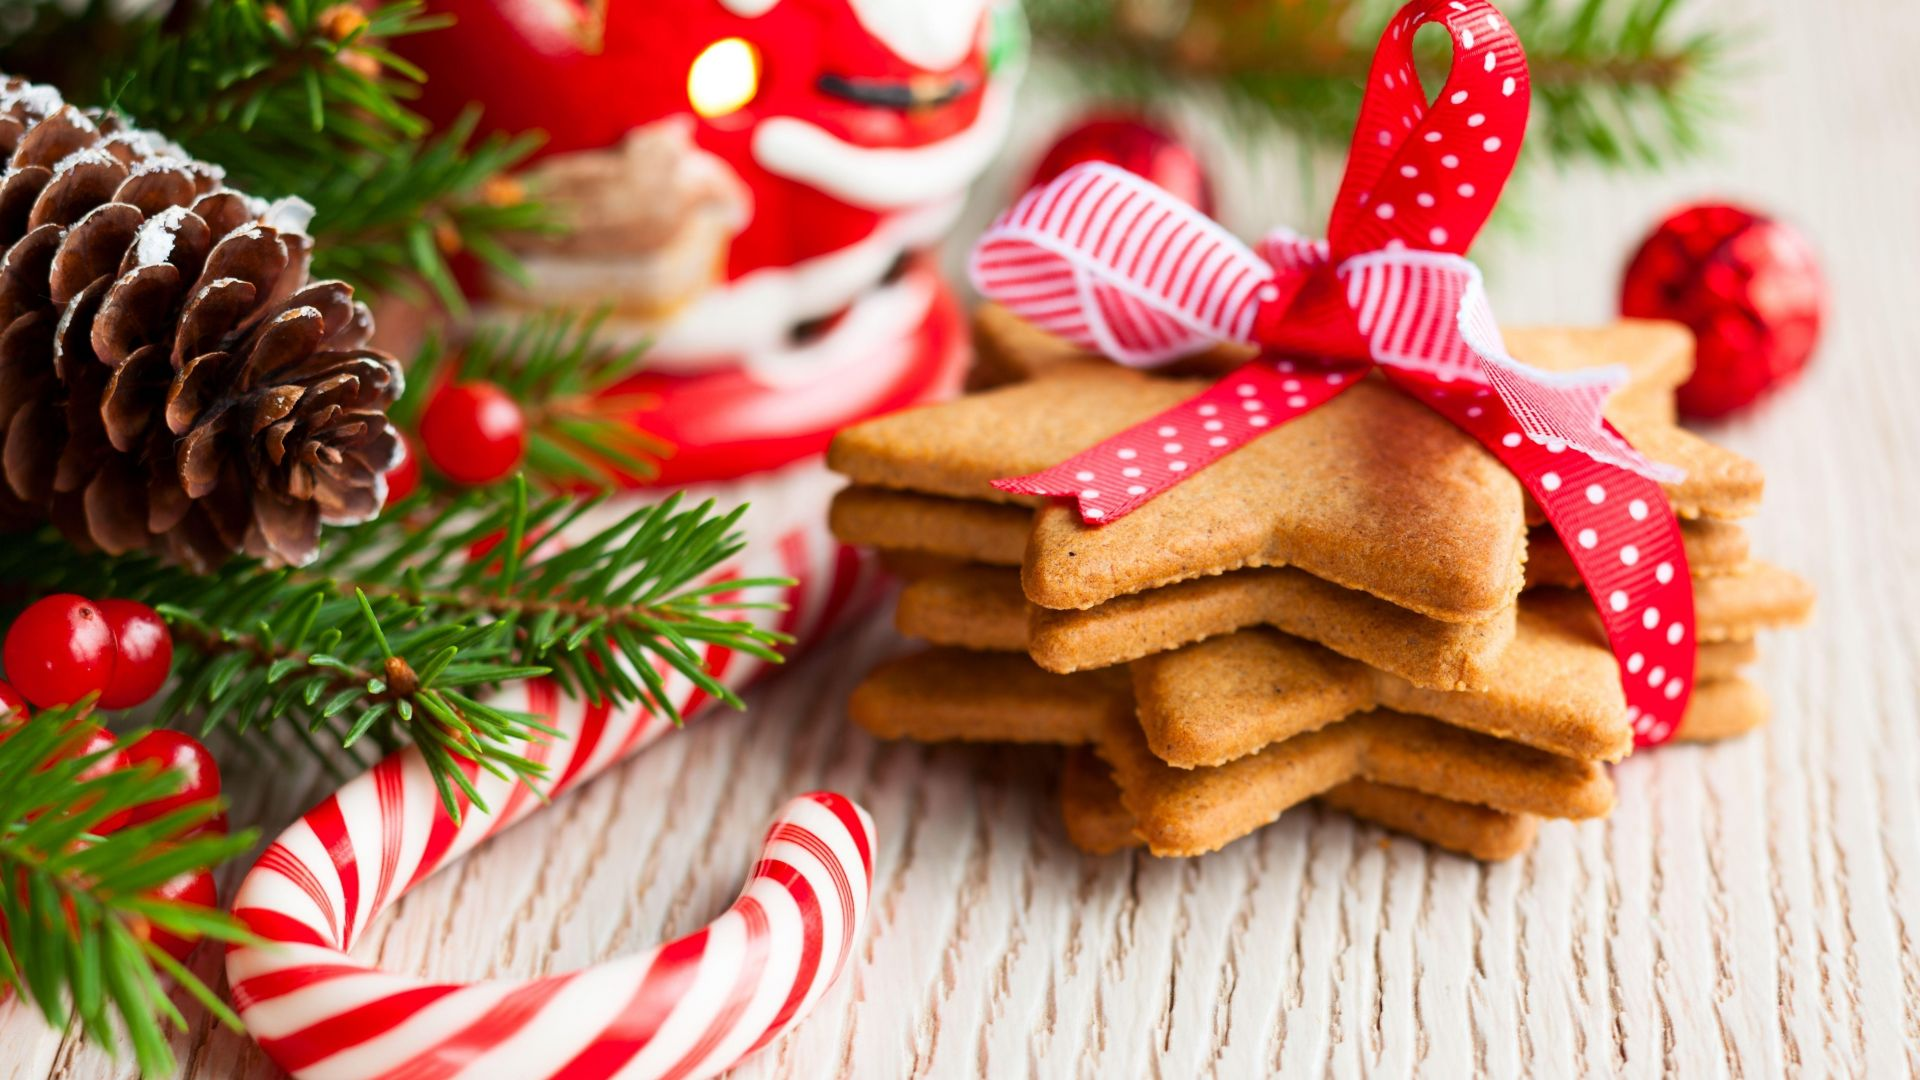 Christmas, New Year, cookies, candy, 5k (horizontal)